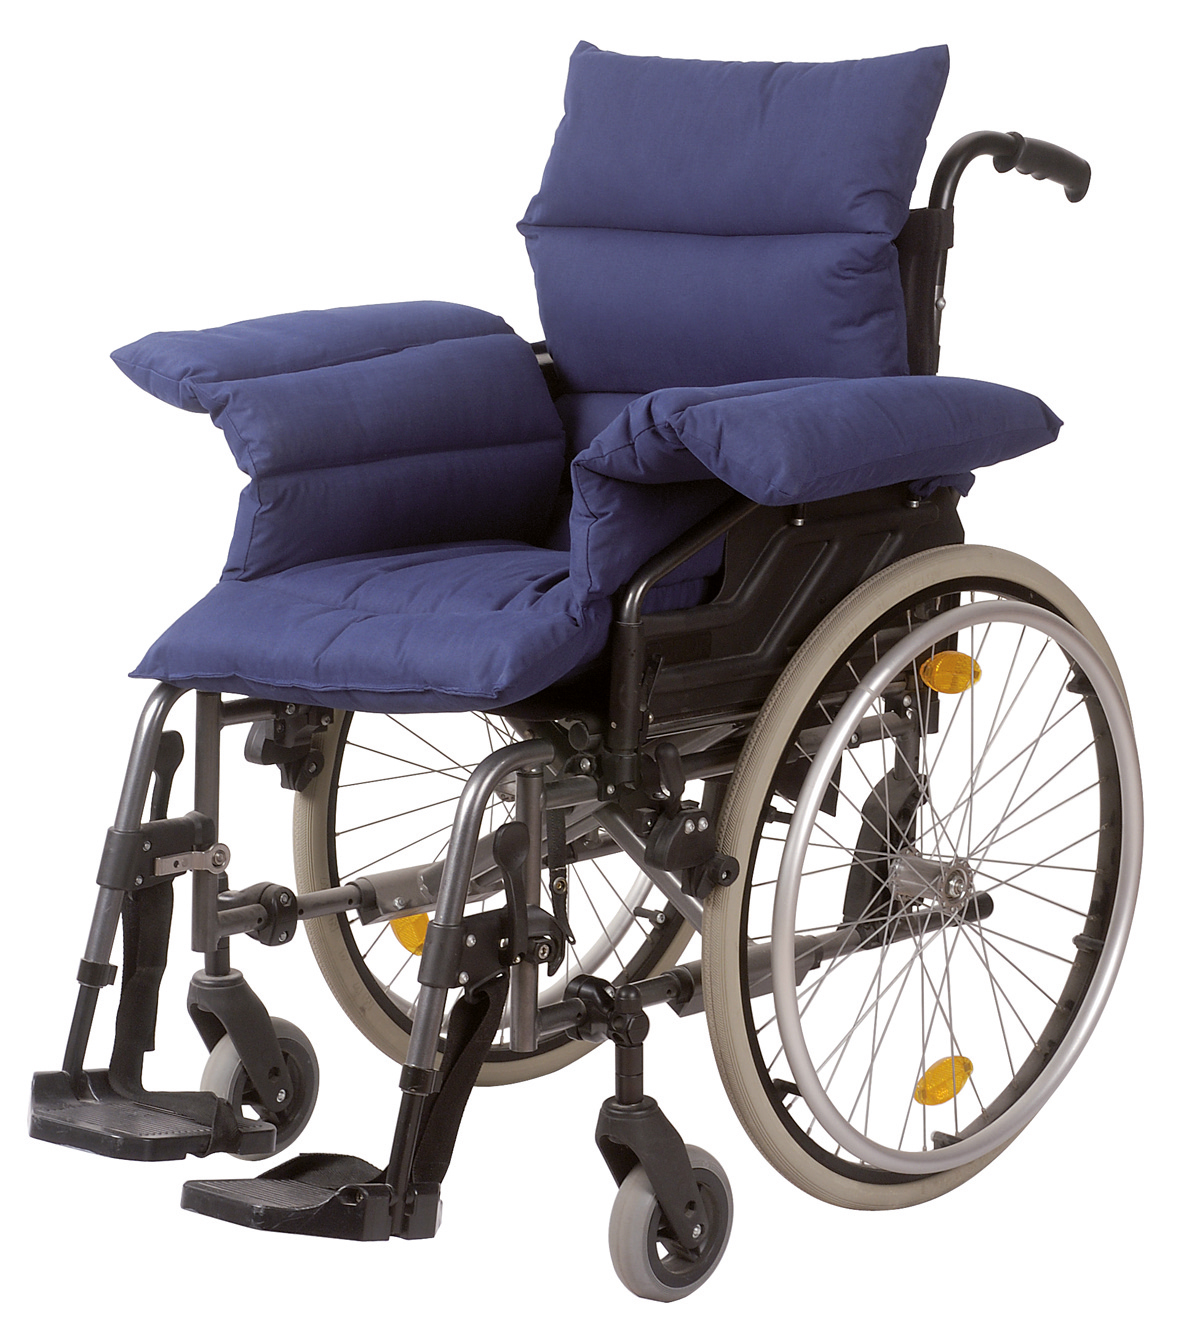 Wheelchair Purchase Magic Hat Single Chair Wheel Accessories Accessory From